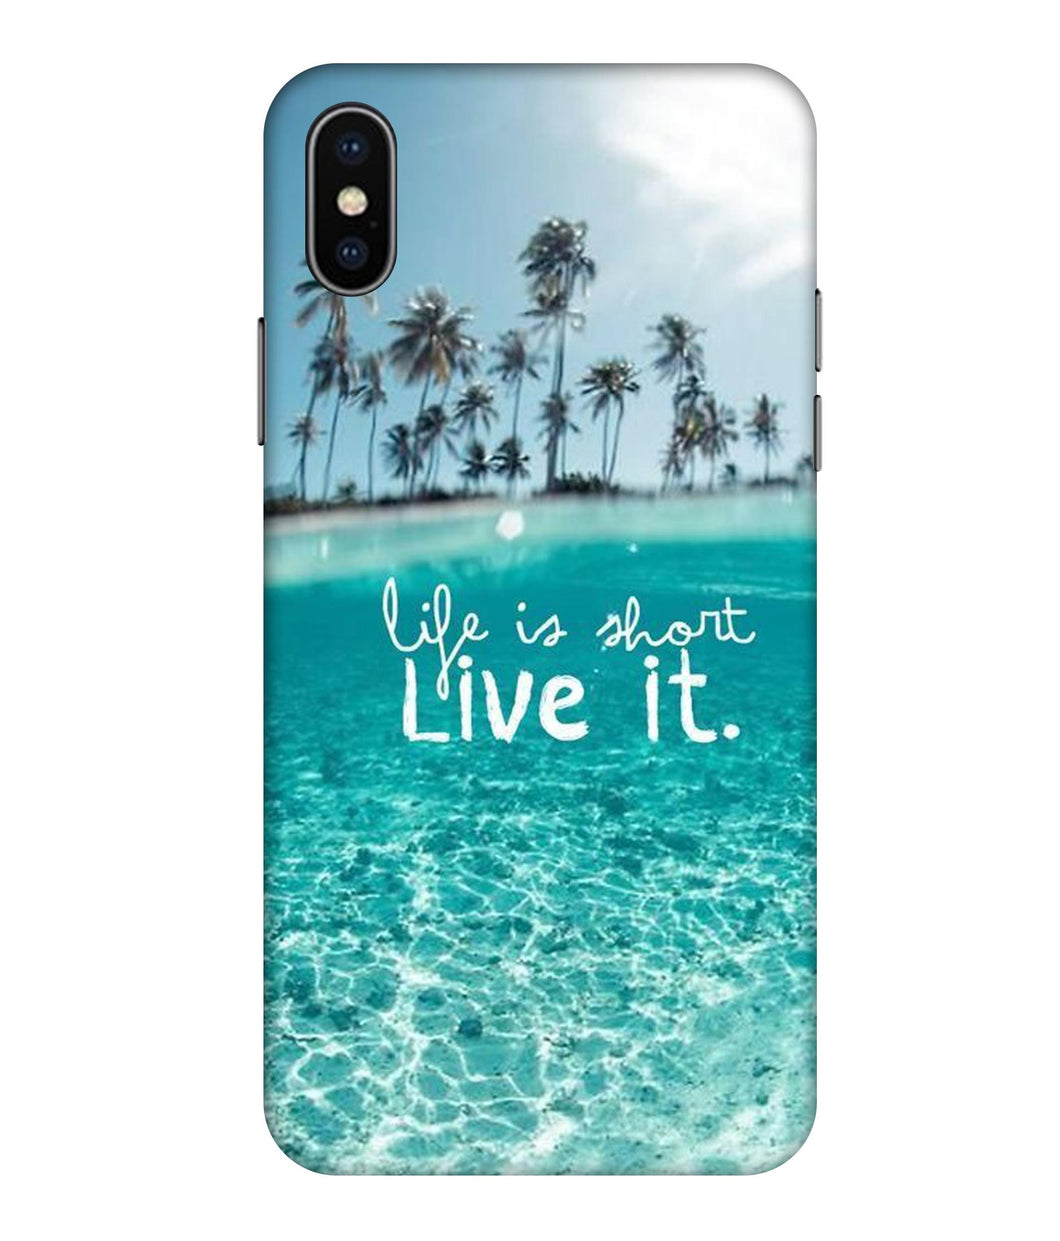 Apple Iphone Xs Max Live Life Mobile cover